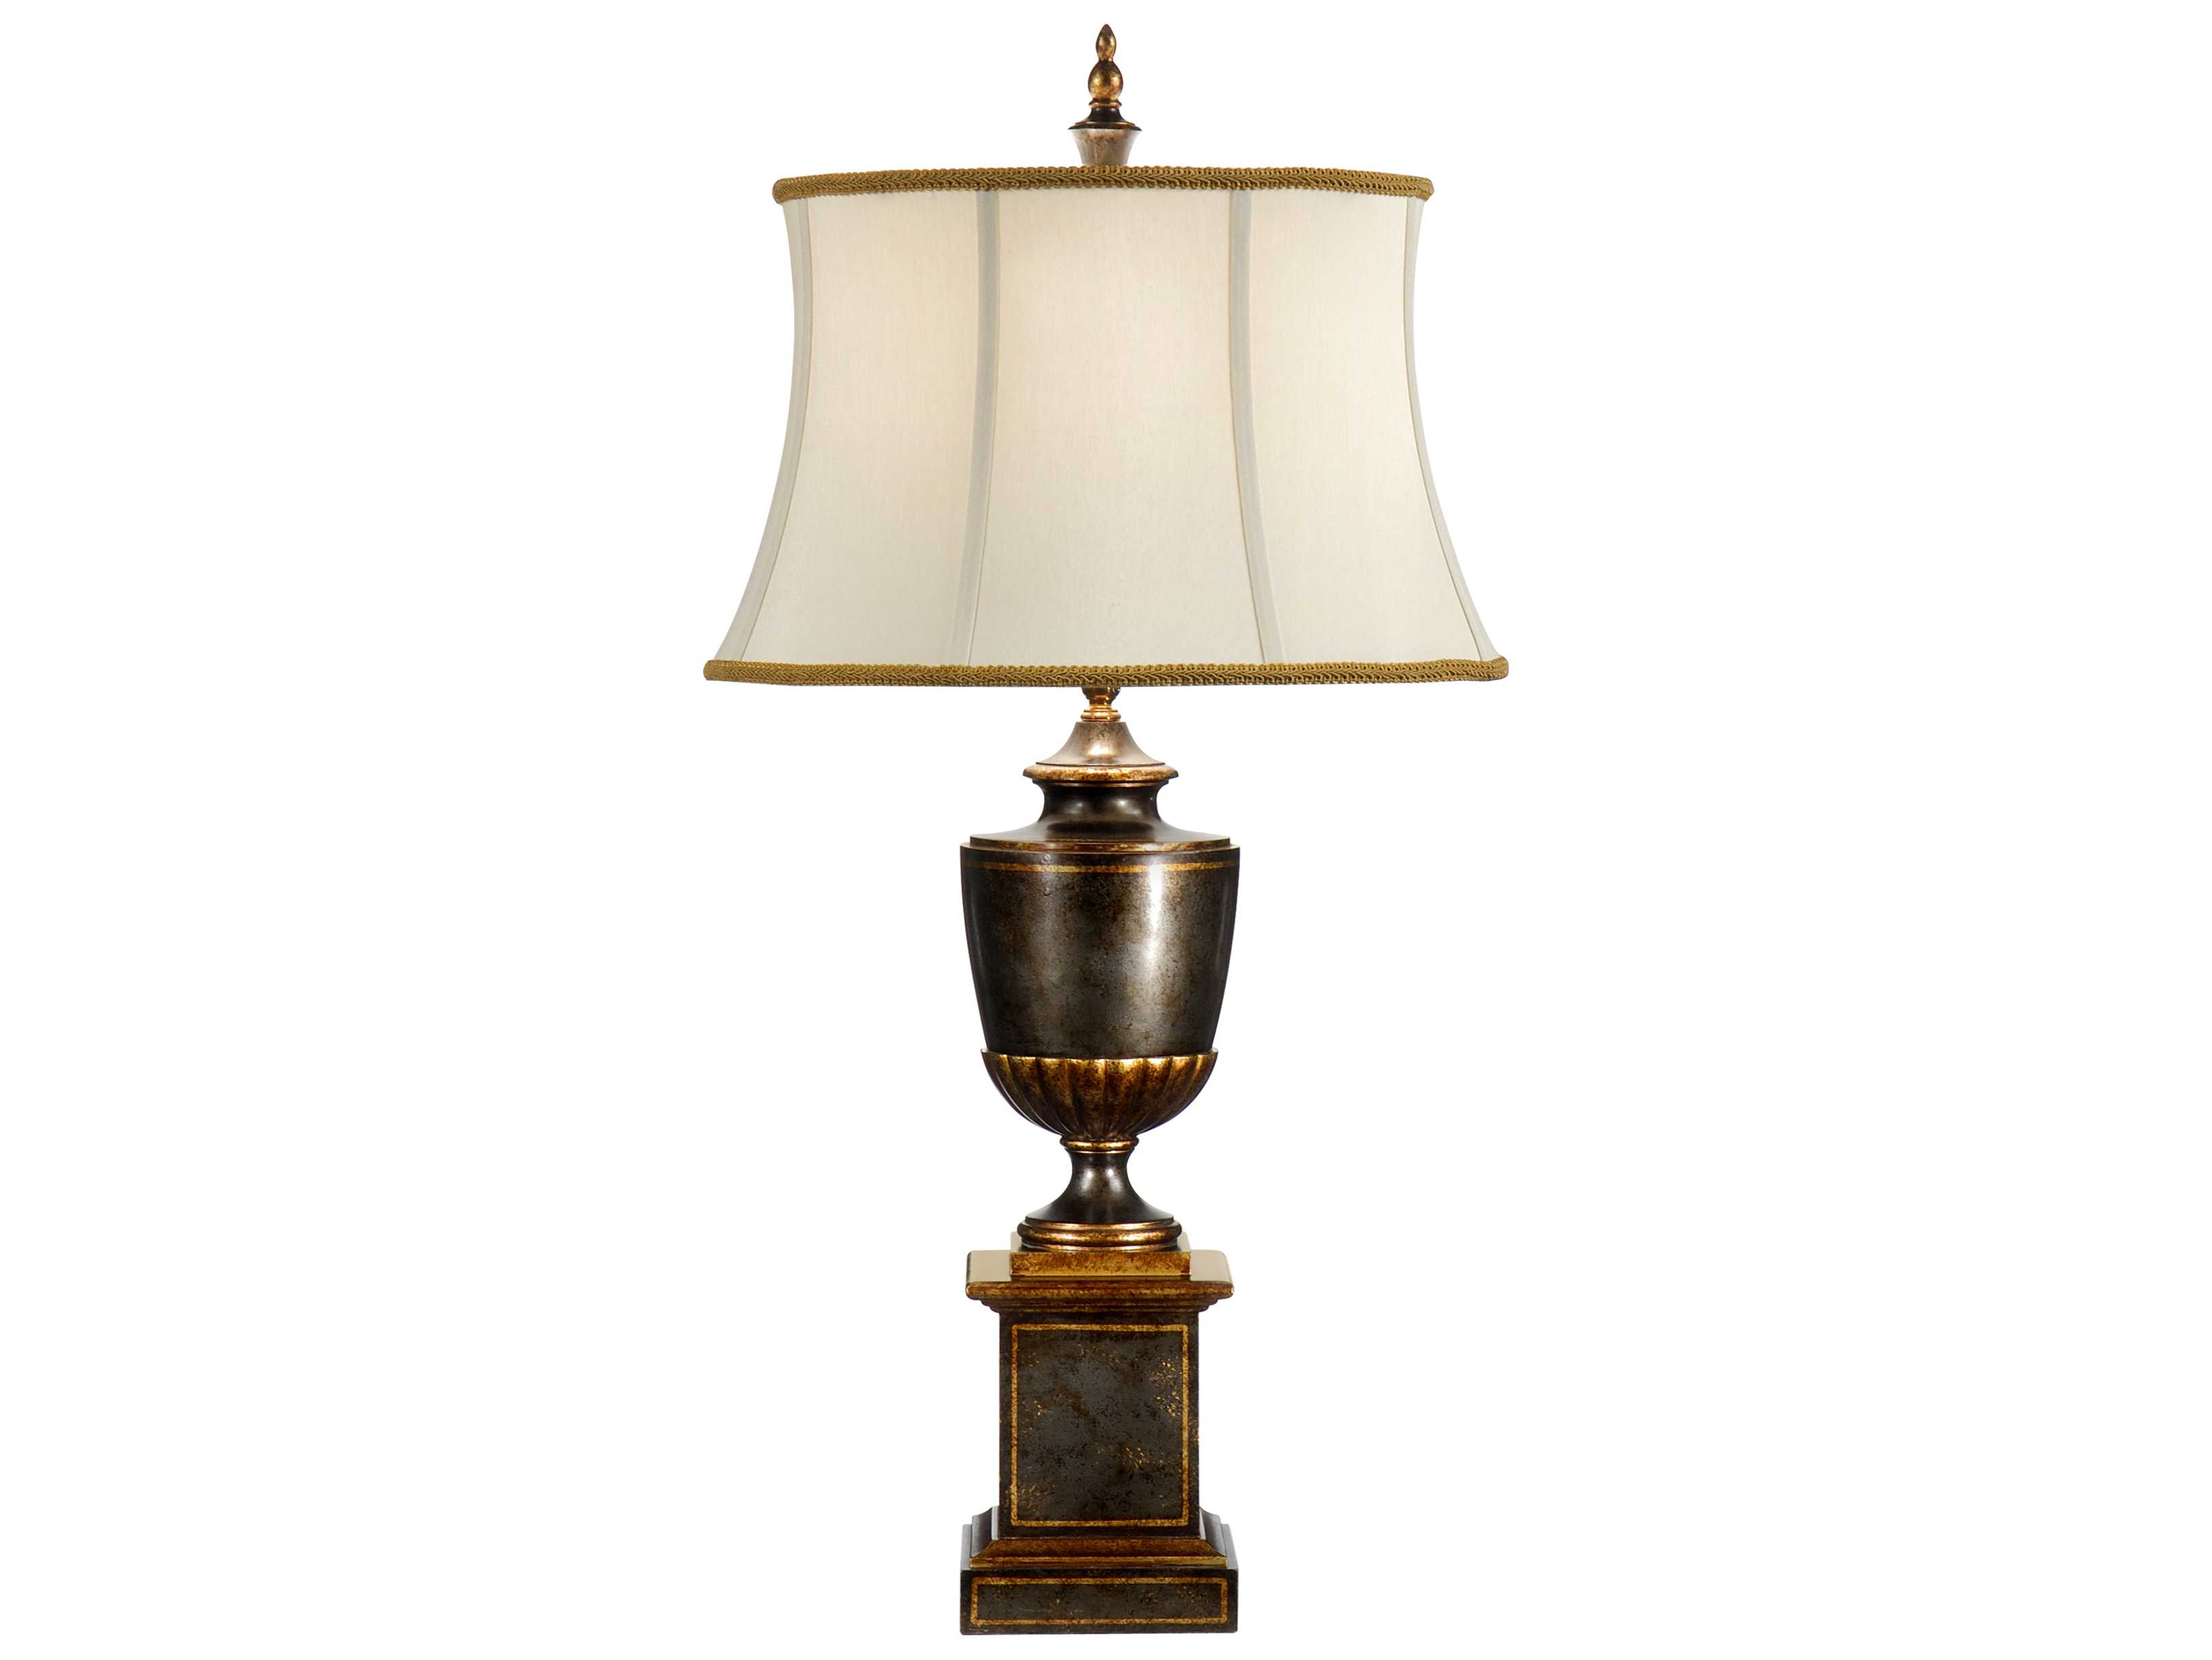 wildwood lamps worn green wood burnished gold accents urn table lamp wl9462. Black Bedroom Furniture Sets. Home Design Ideas